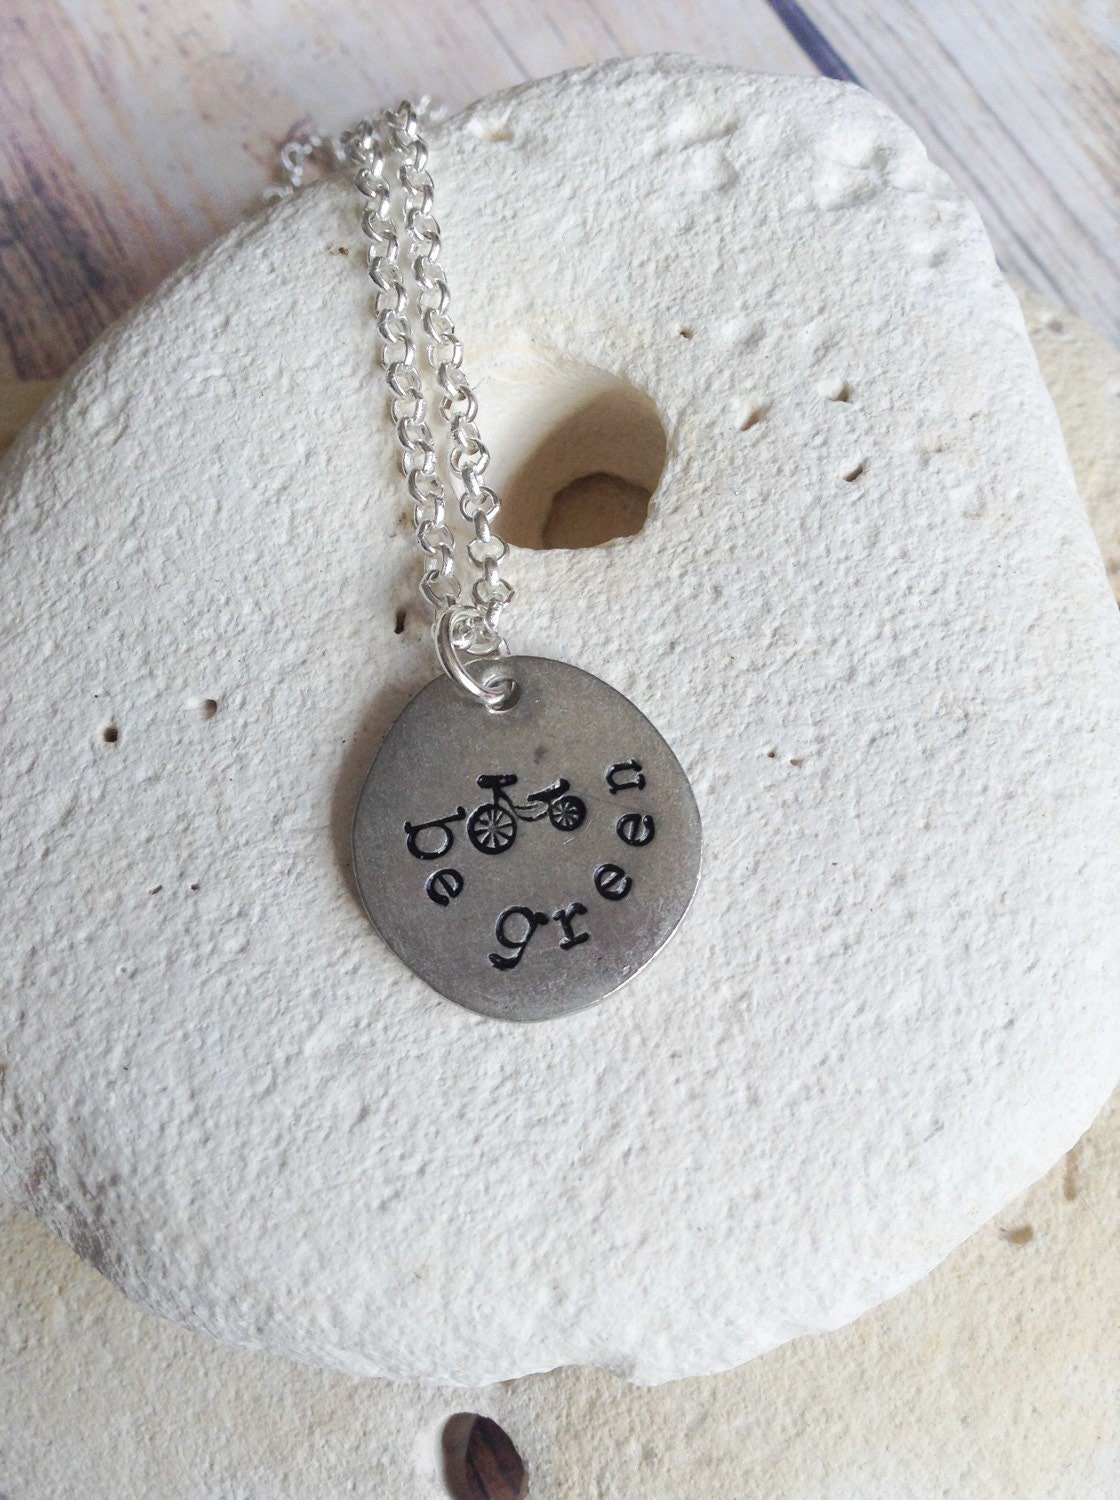 Be green environmentalist necklace, bike necklace, cycle pendant, vegan jewelry, eco friendly jewellery